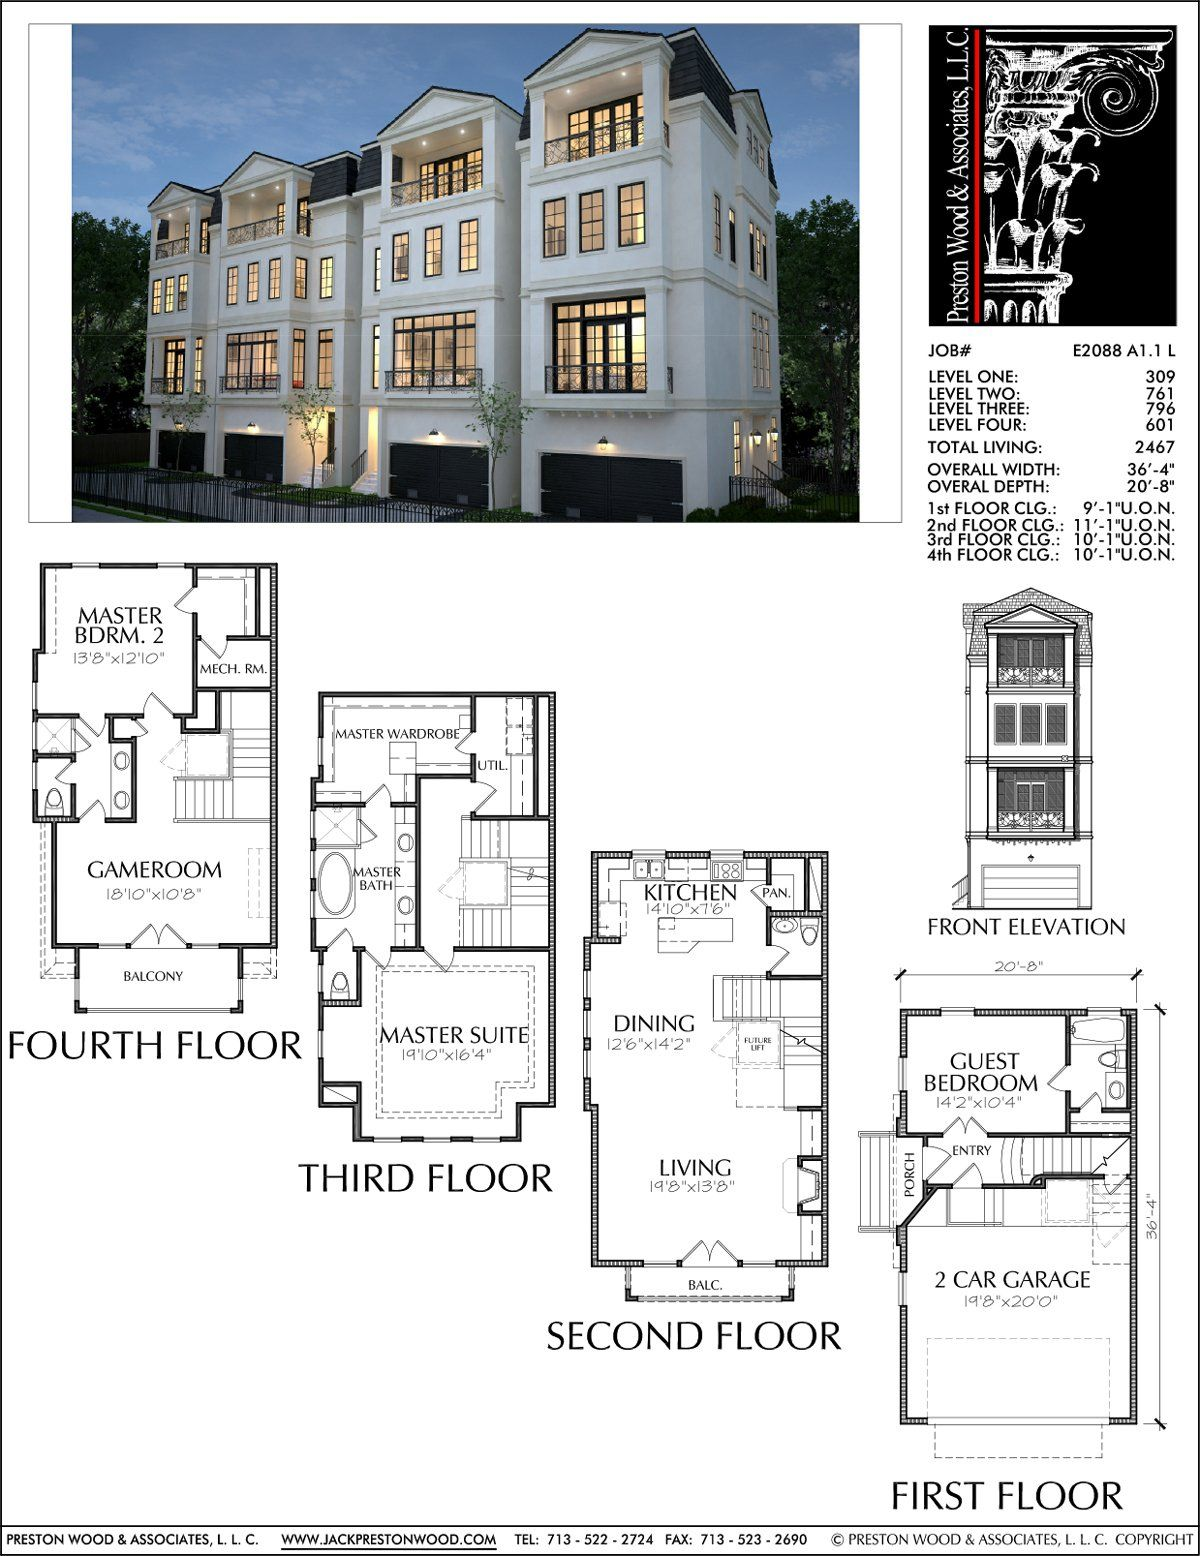 Townhouse Plan E2088 A1 1 Town House Floor Plan Brownstone Homes House Floor Plans